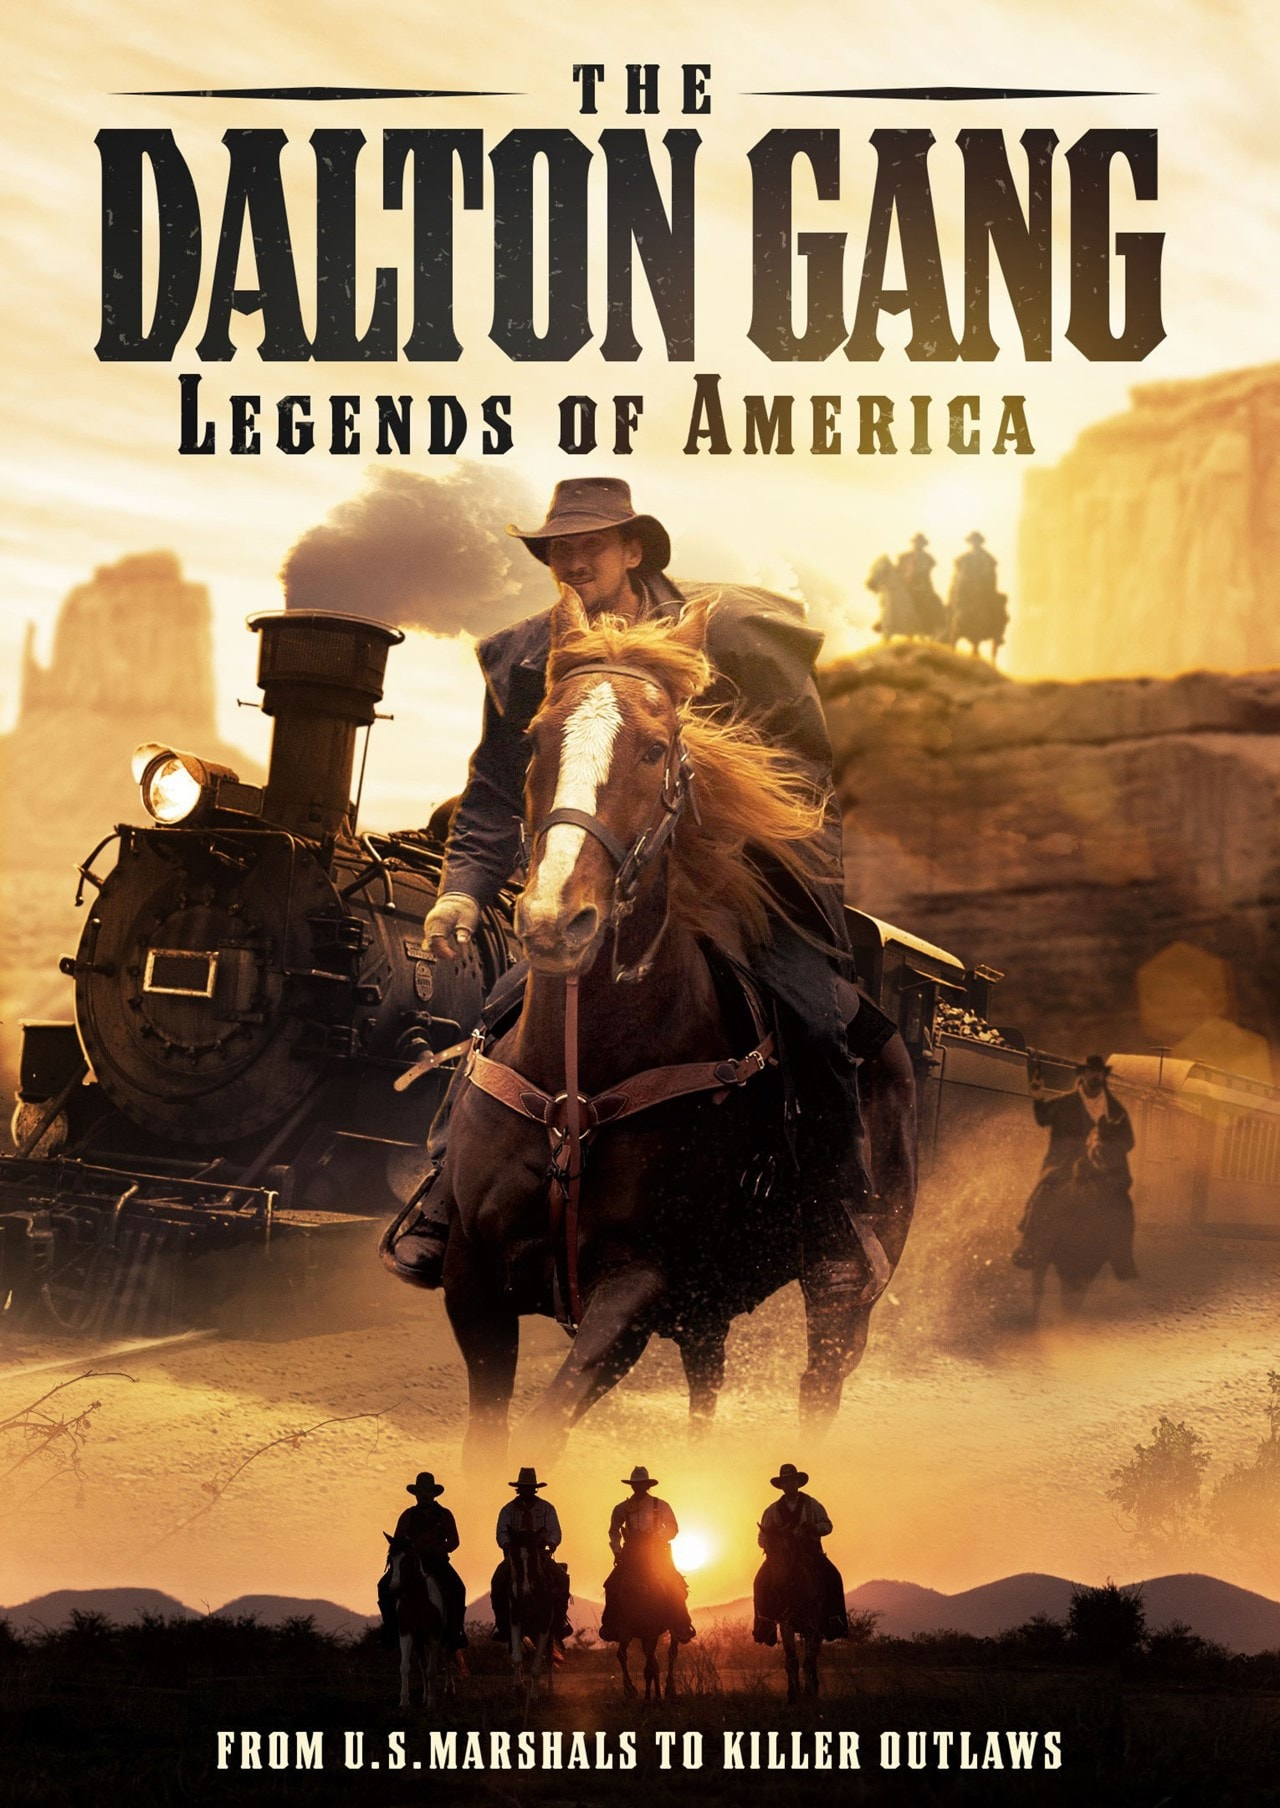 The Dalton Gang - Legends of America - 1